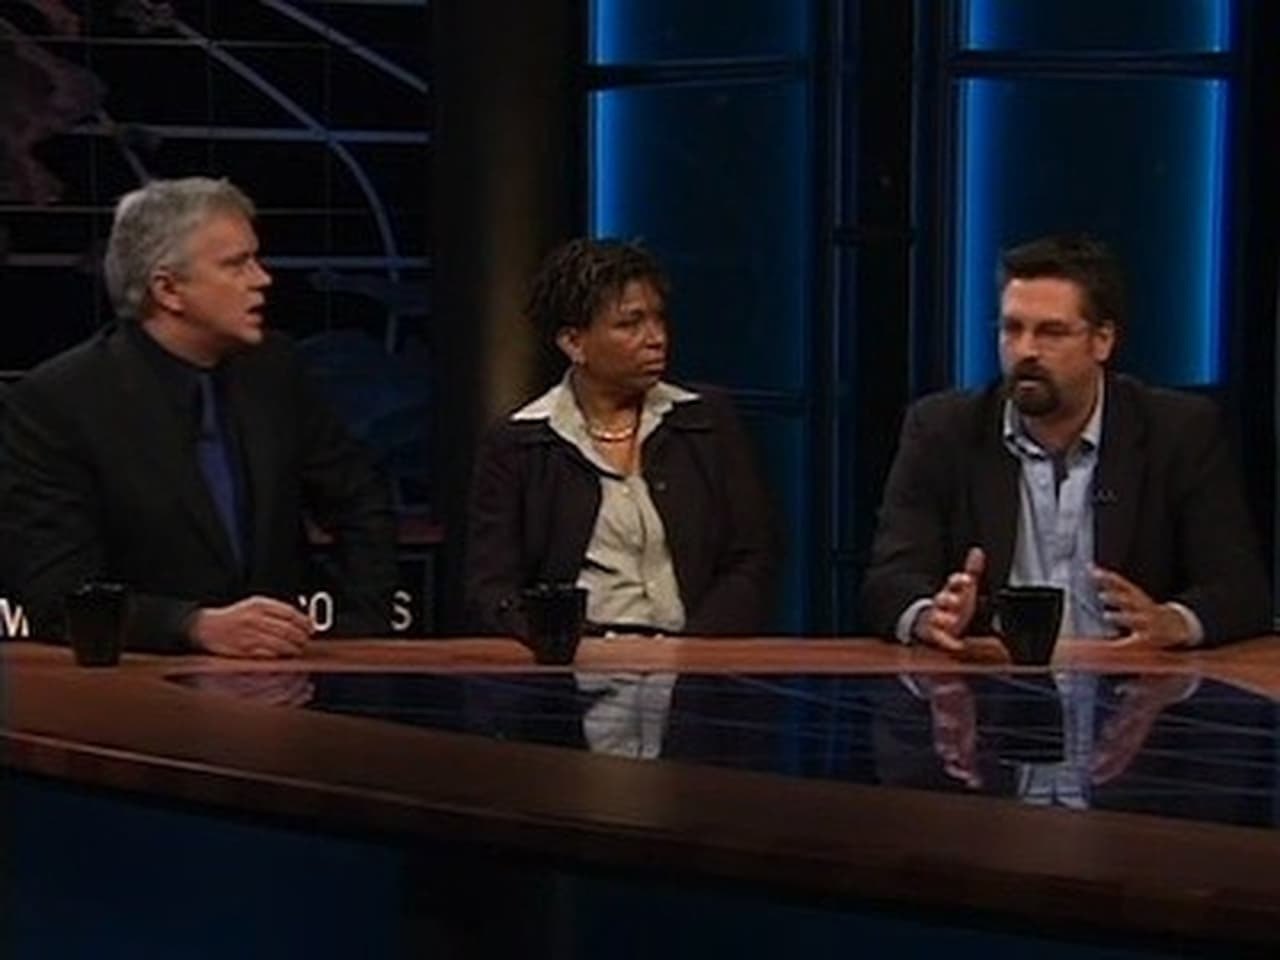 Real Time with Bill Maher - Season 5 Episode 15 : August 24, 2007